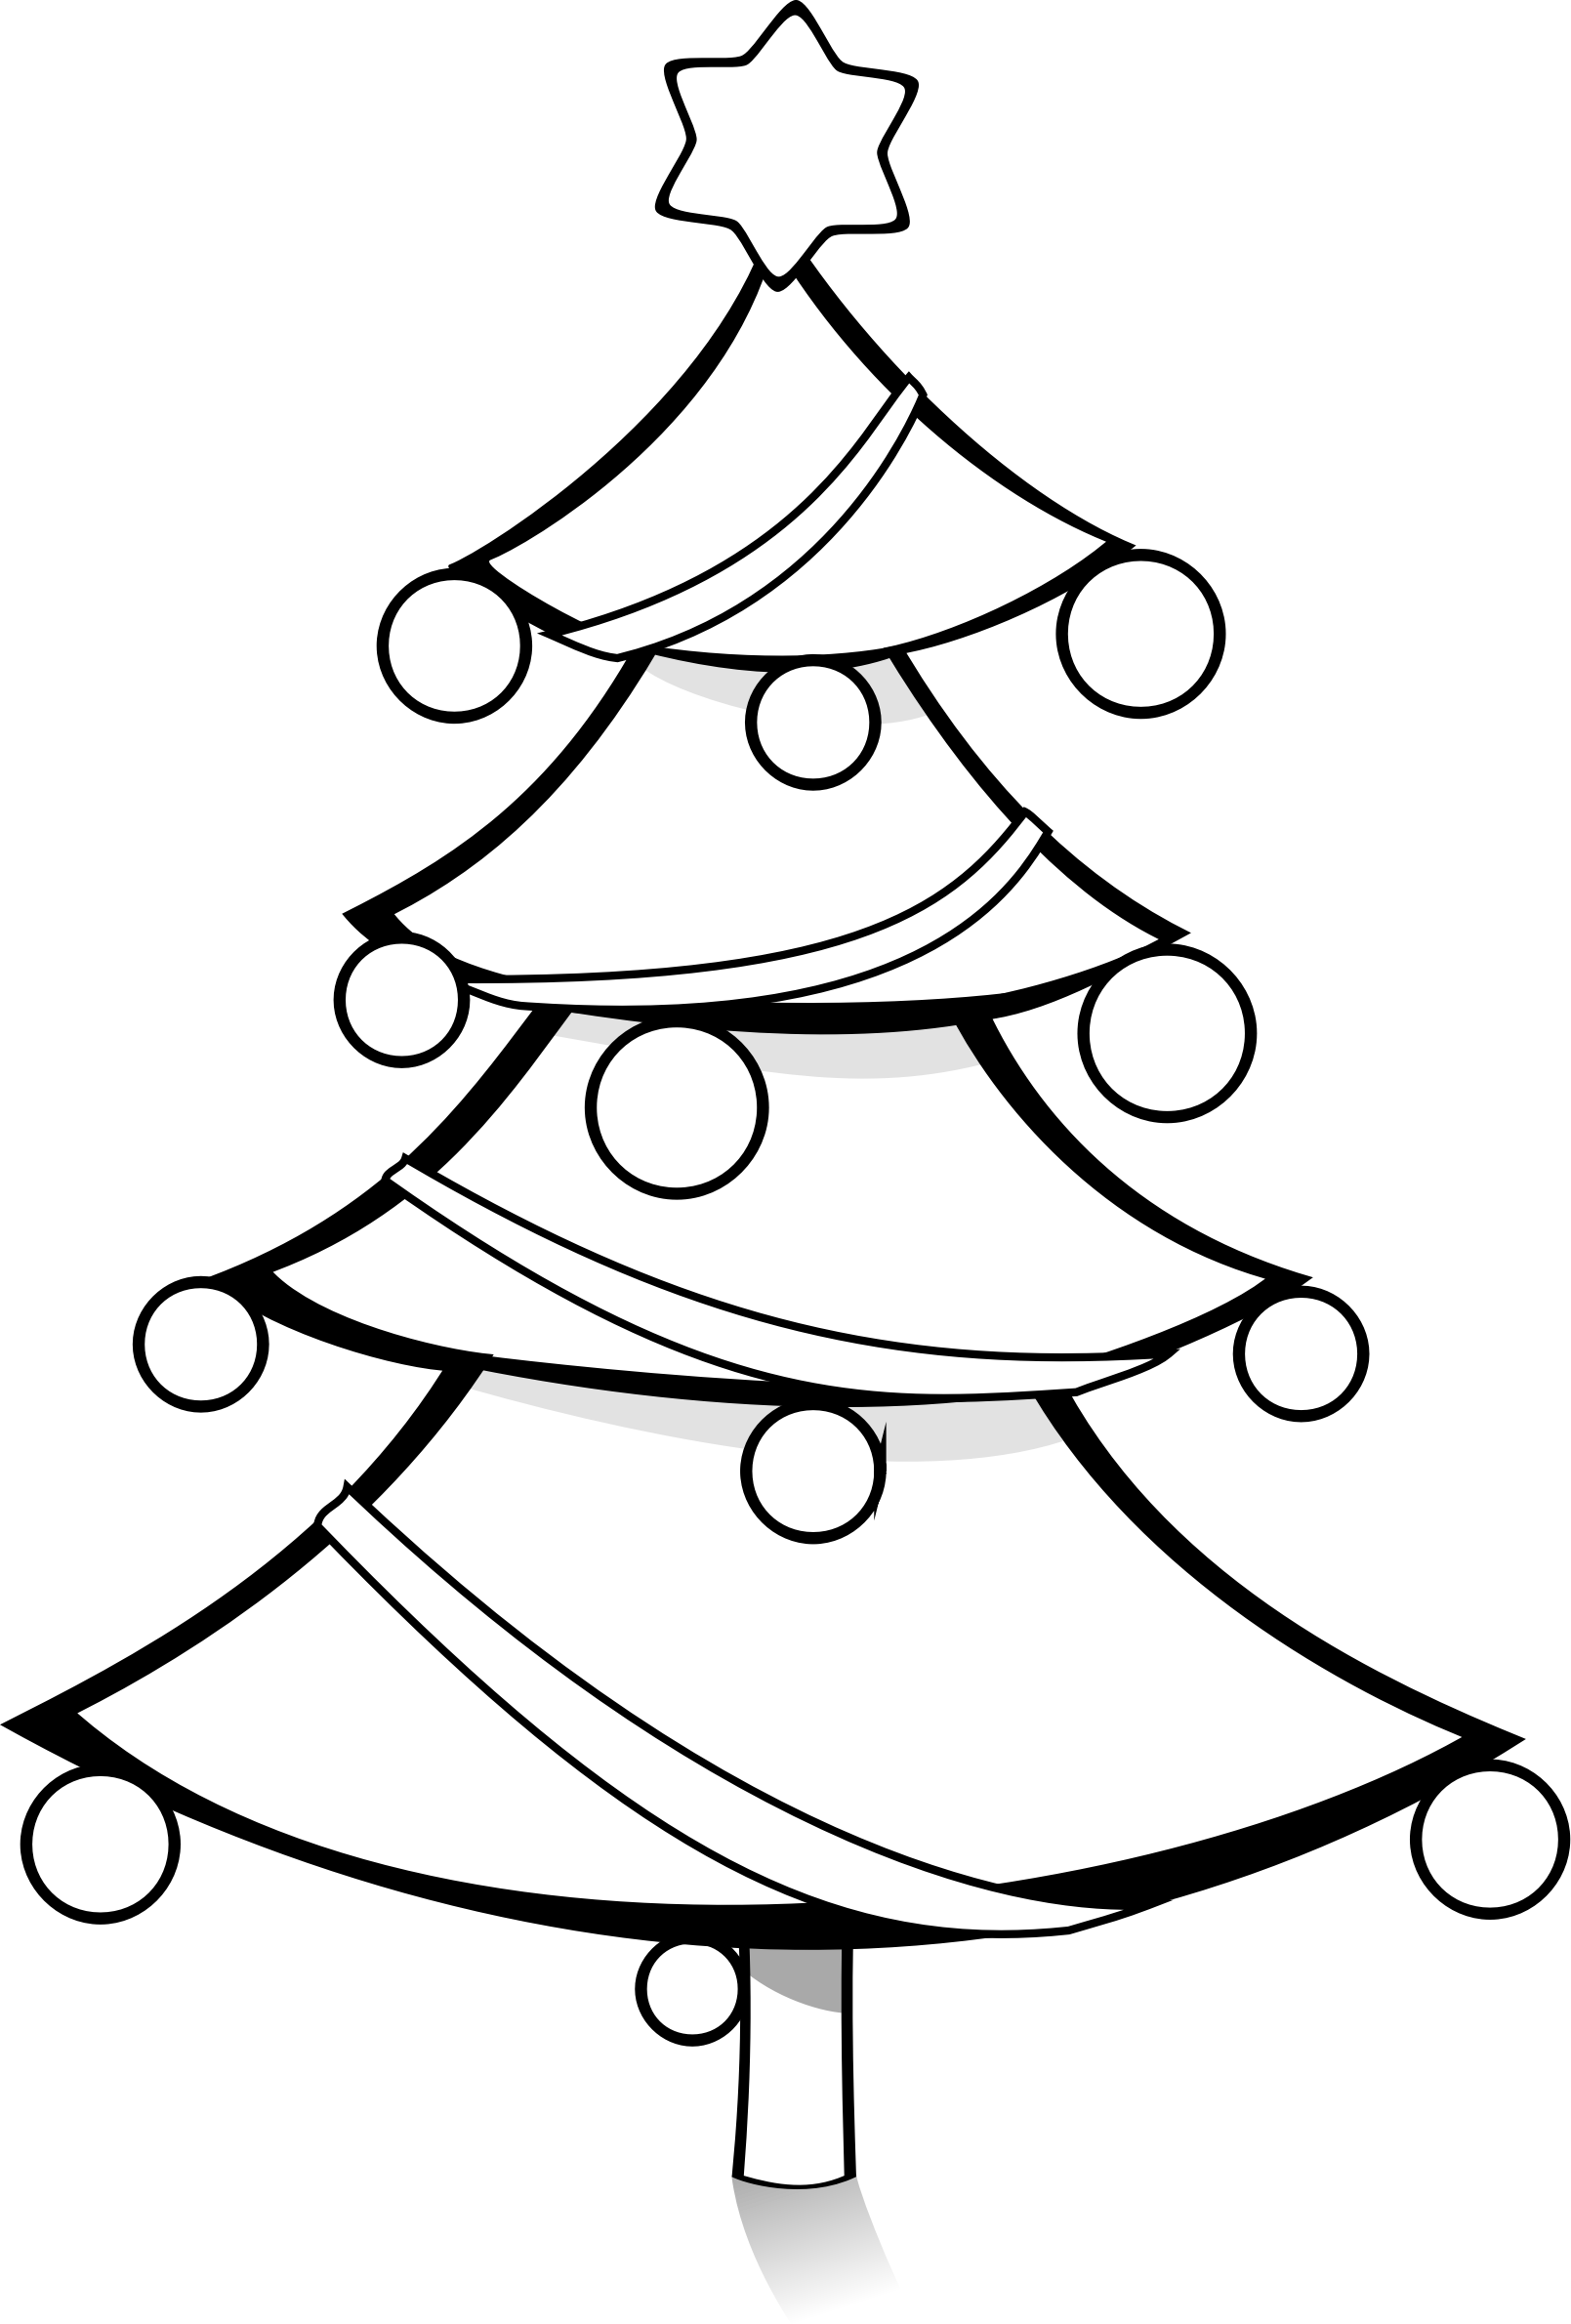 1609x2380 clipart 1609x2380 clipart 731x1024 coloring pages christmas trees 731x1024 coloring pages christmas trees - Christmas Tree Coloring Sheets